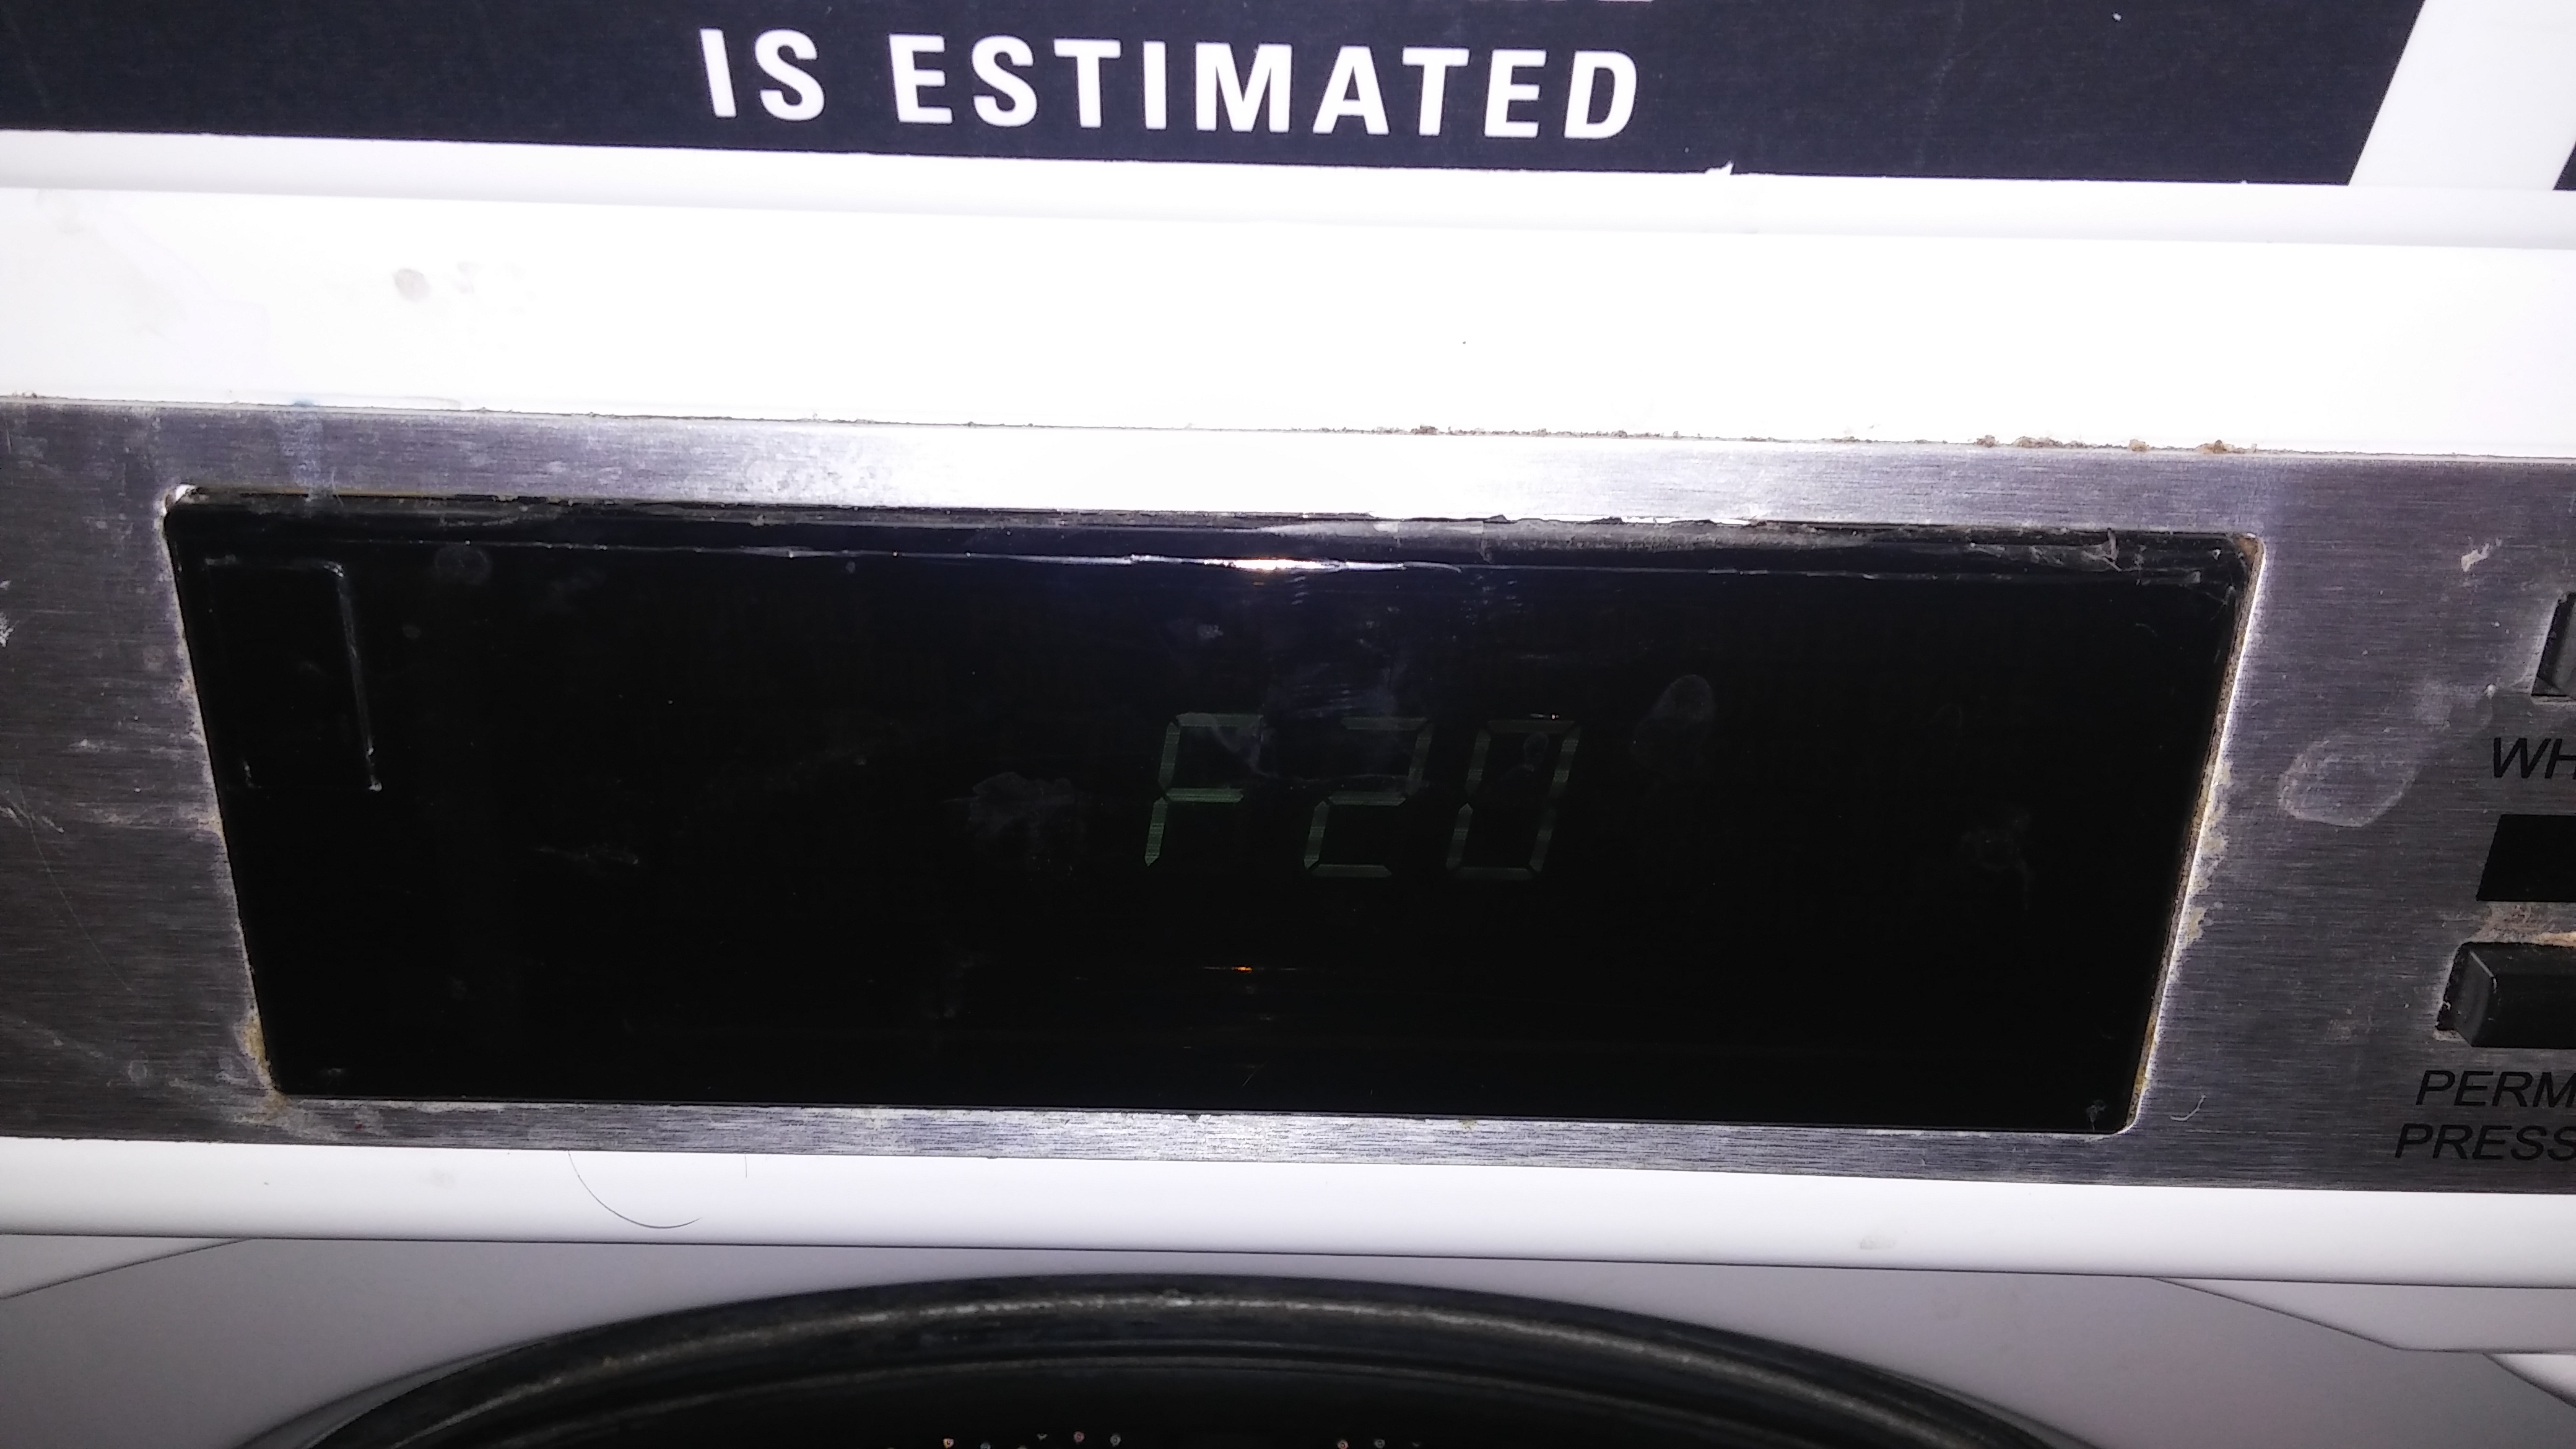 How to Fix a Maytag F20 Error Code - No Nonsense Landlord